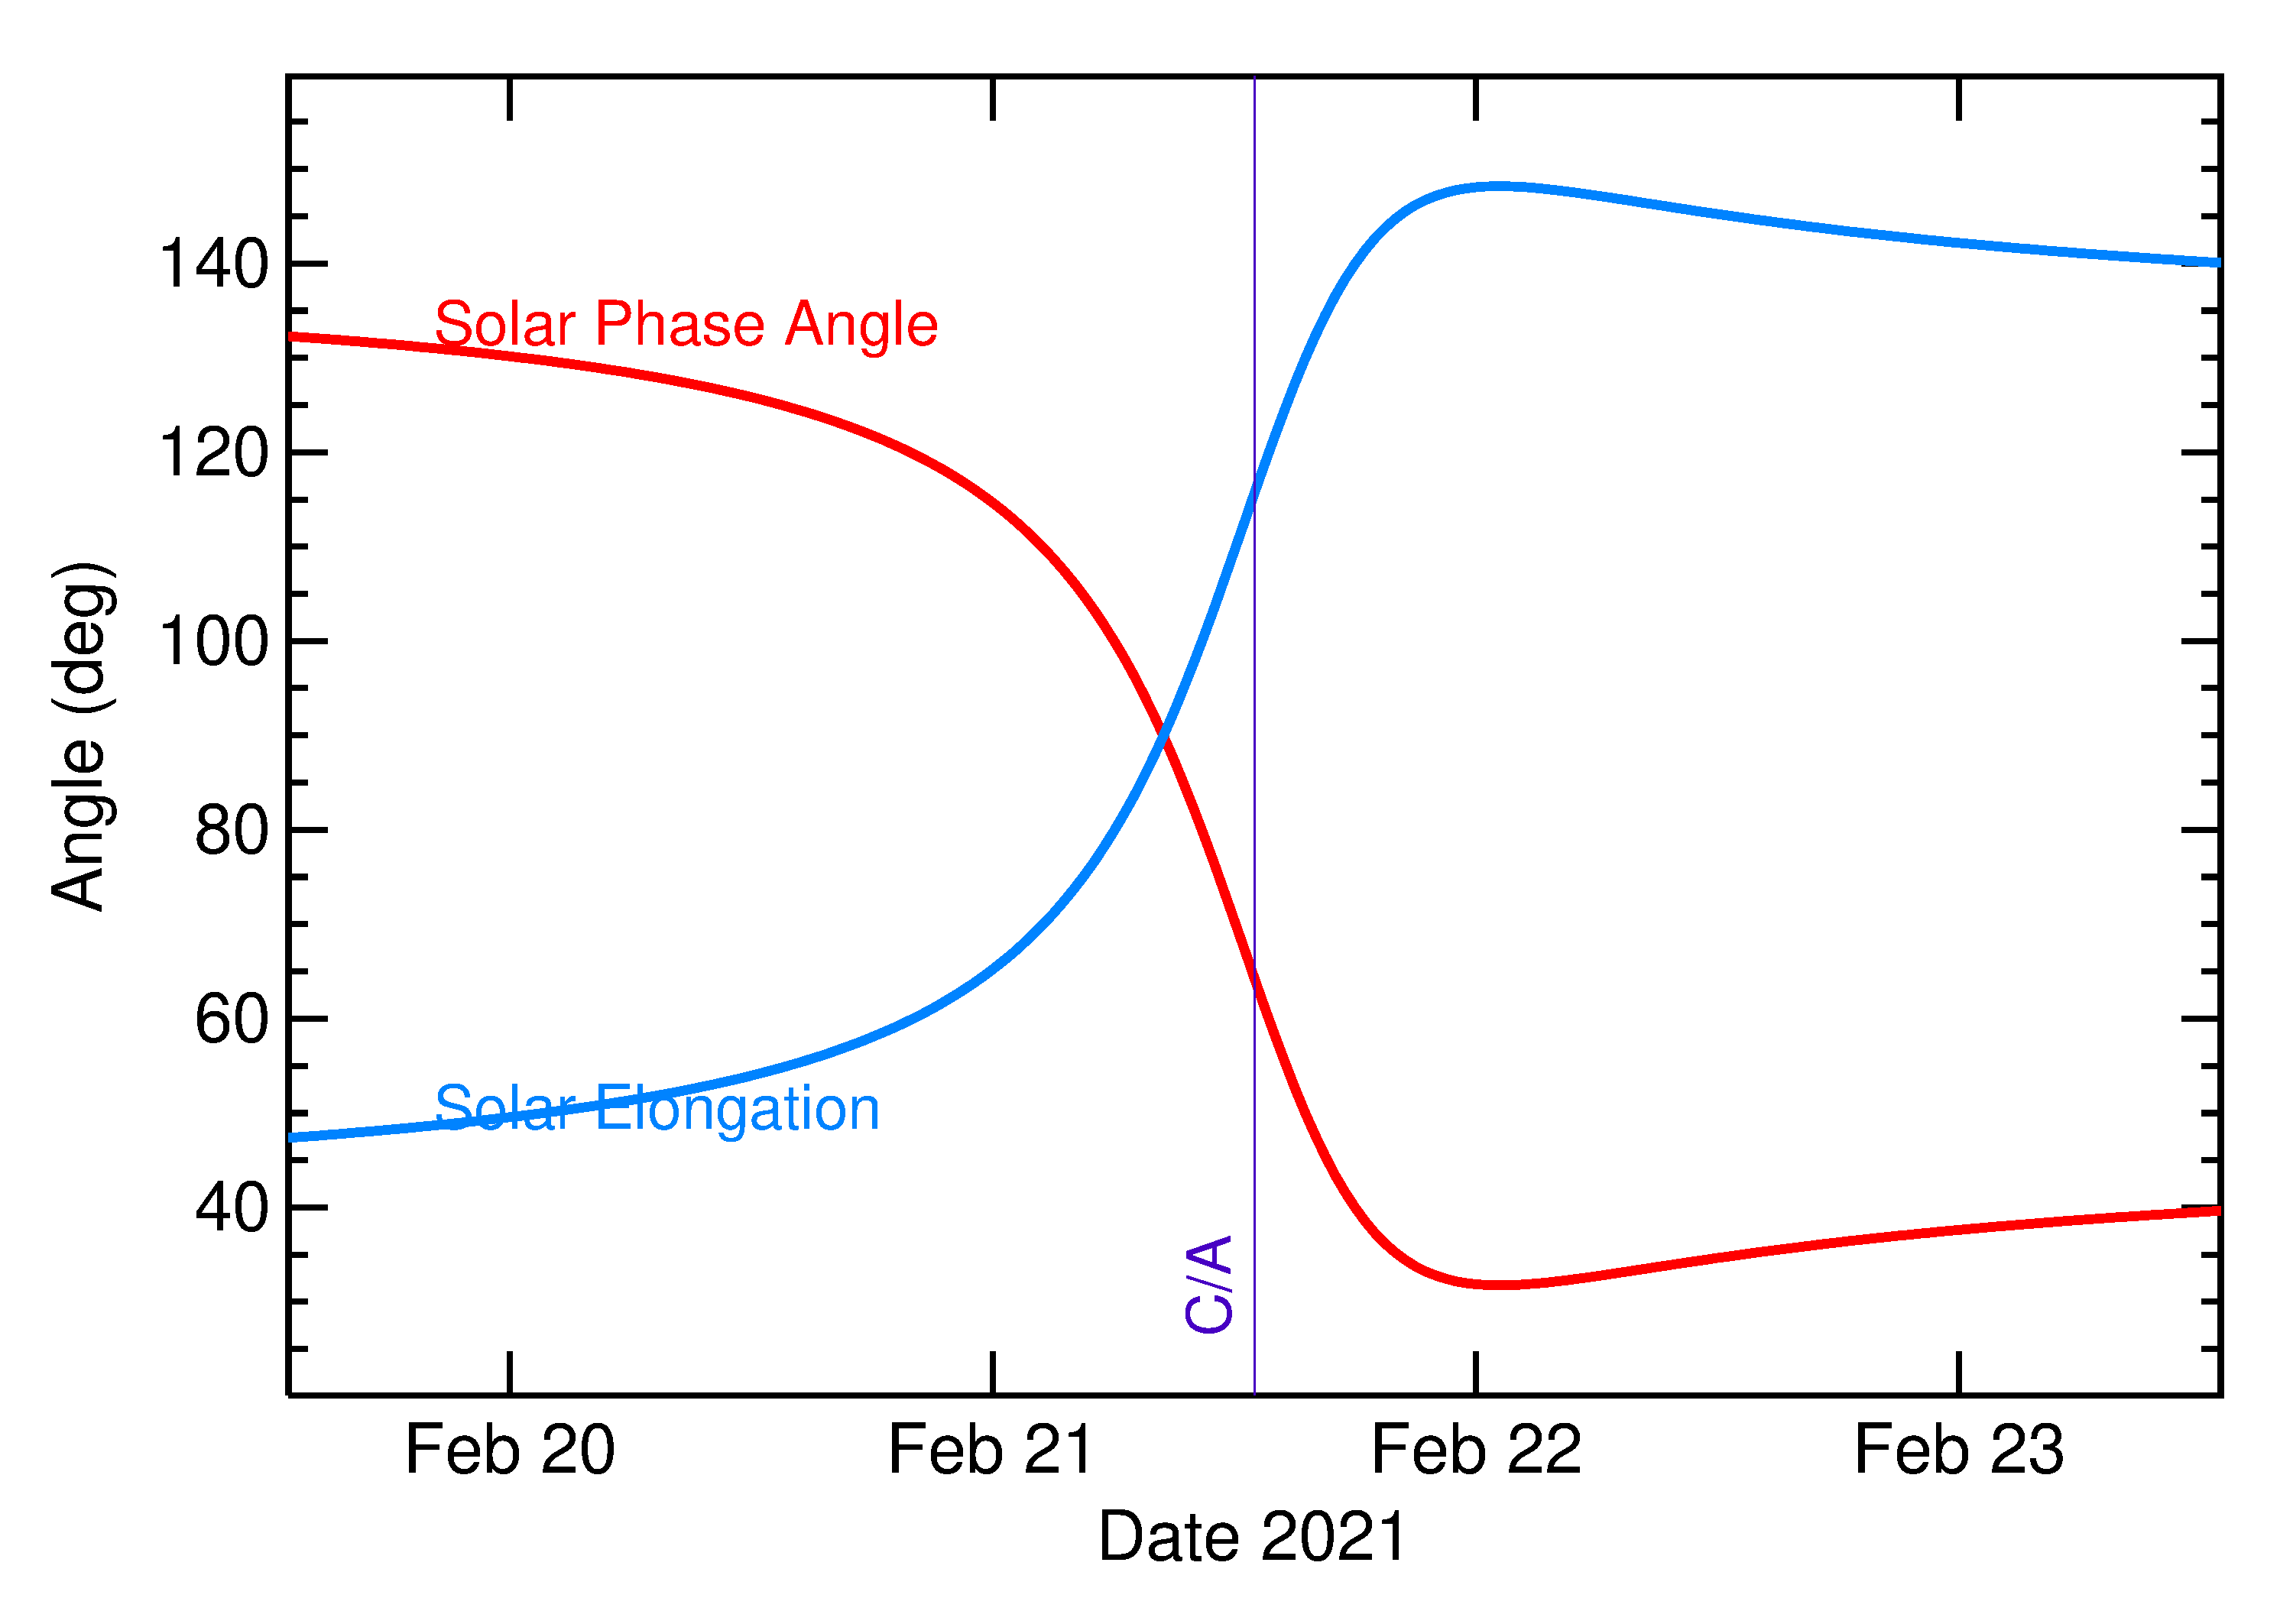 Solar Elongation and Solar Phase Angle of 2021 DA2 in the days around closest approach